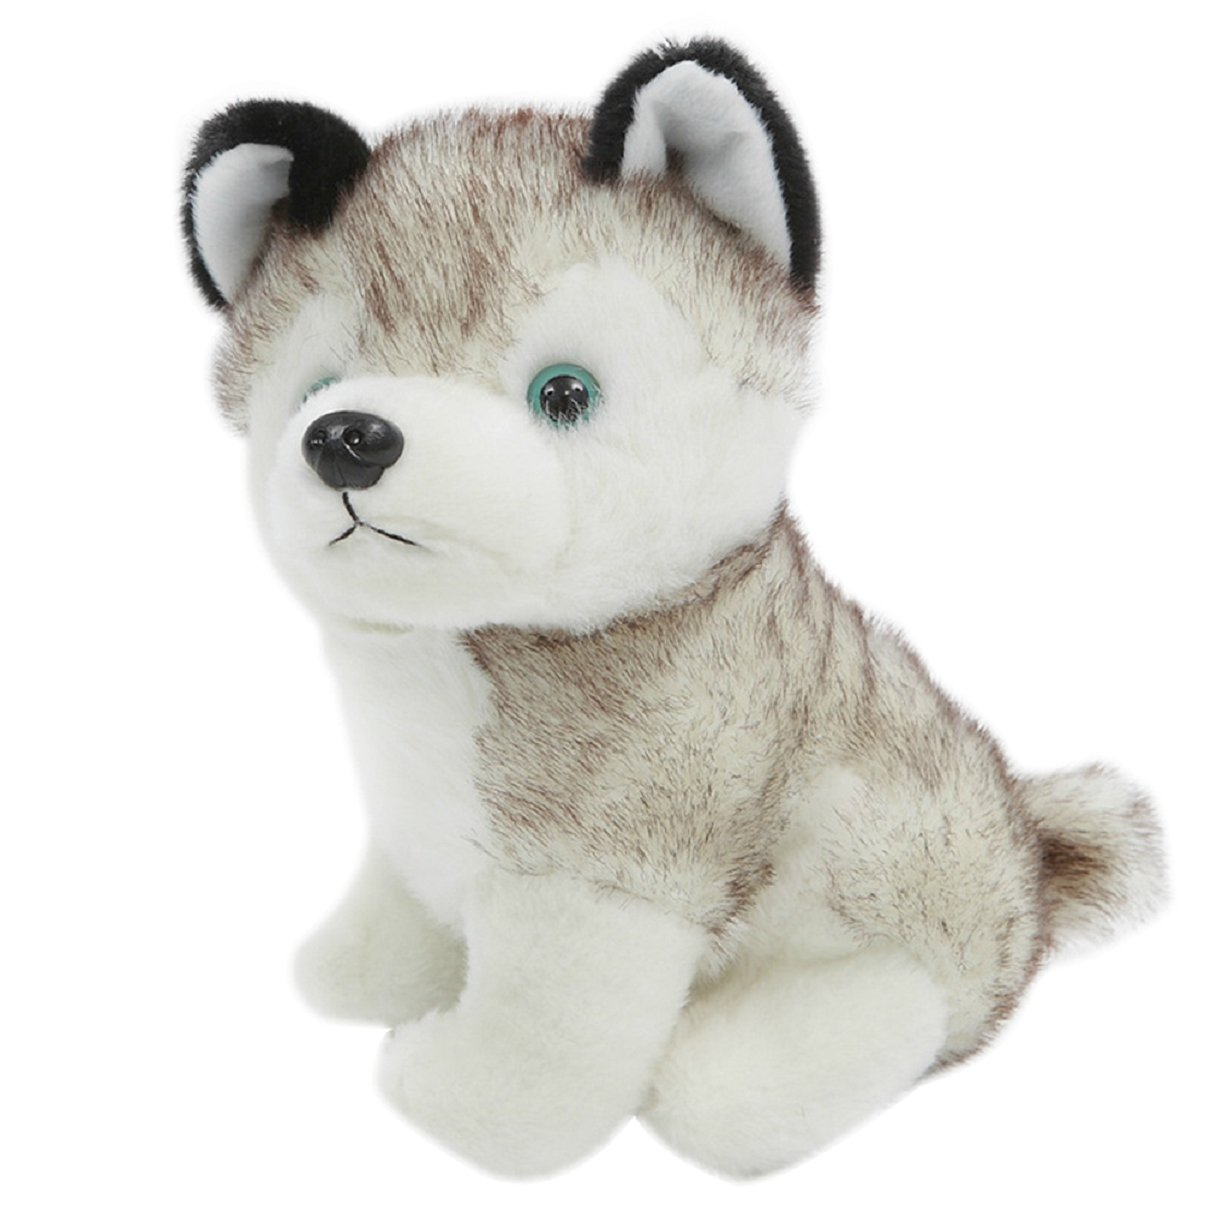 Axixi Cute Baby Kids Soft Stuffed Animal Doll Plush Husky Dog Toy Christmas Birthday Gift (28cm/11inch)